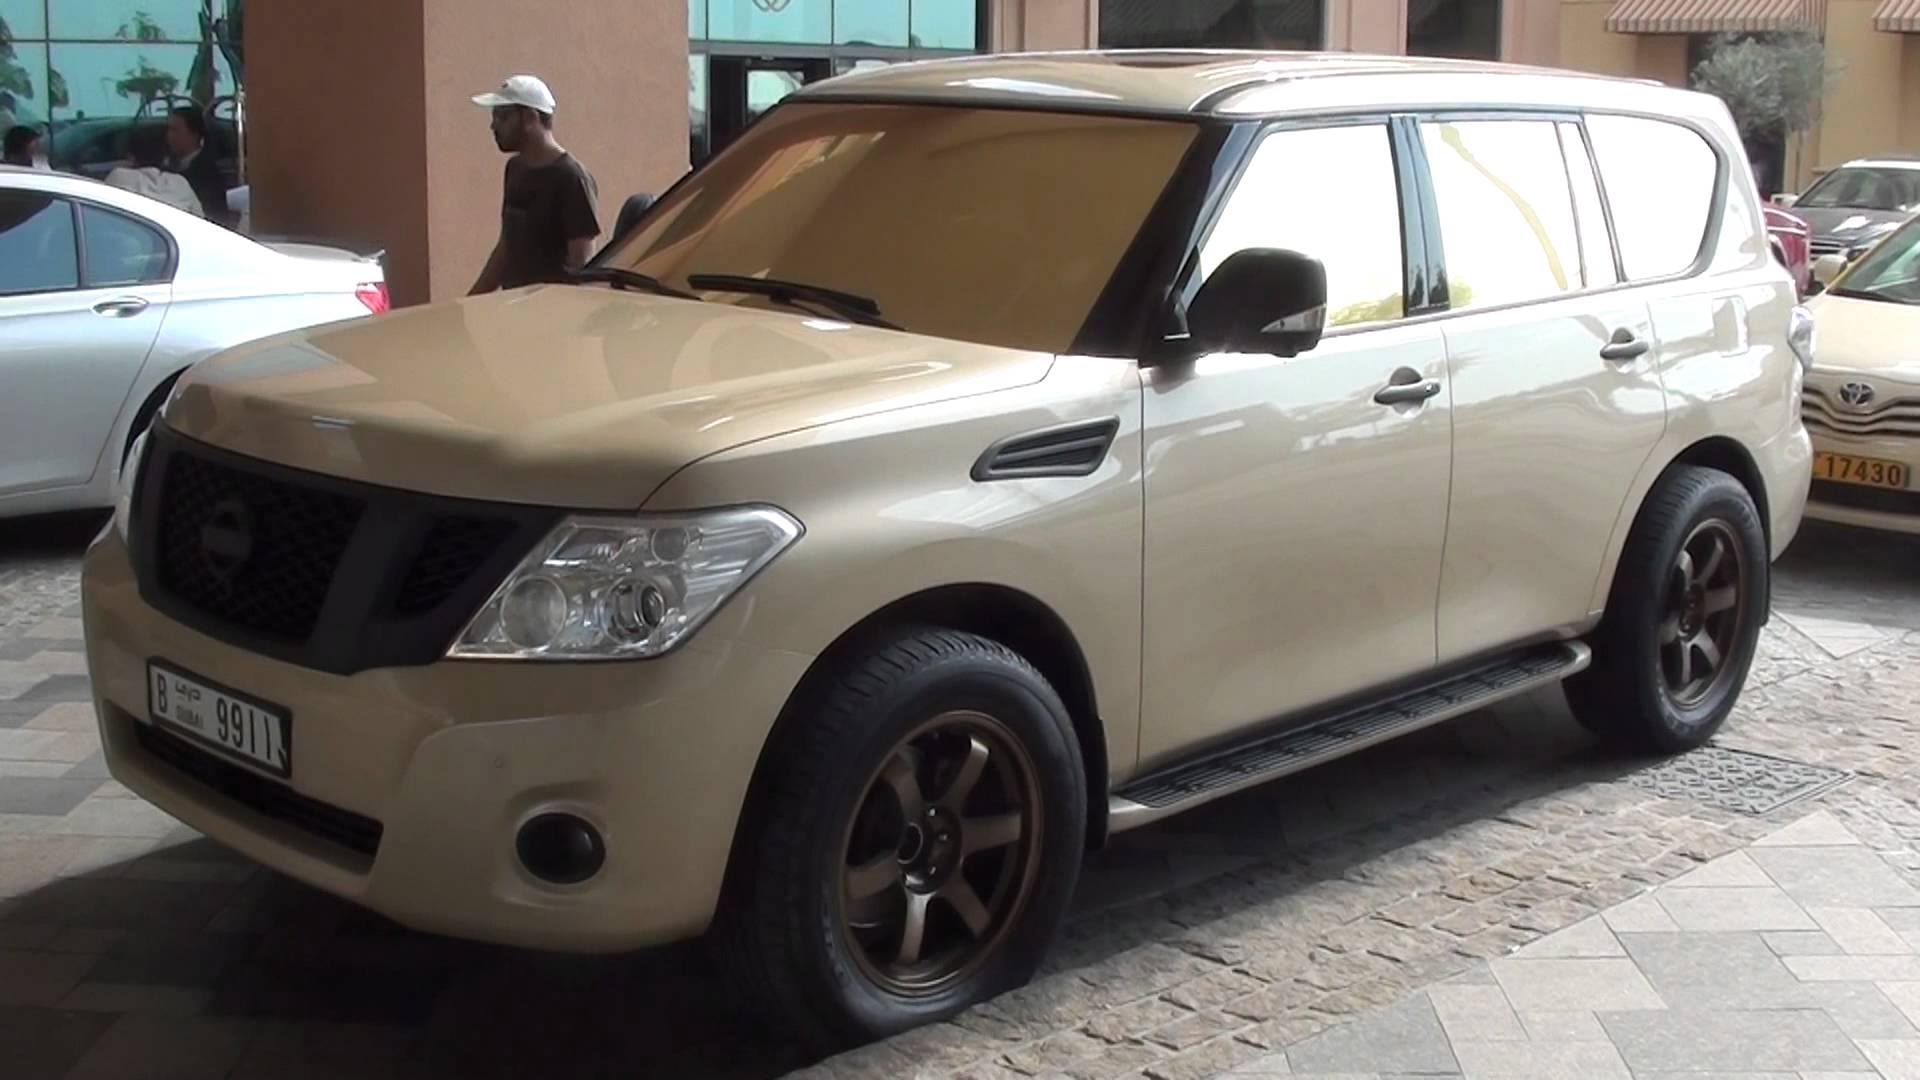 2016 Nissan Patrol Y62 Pictures Information And Specs